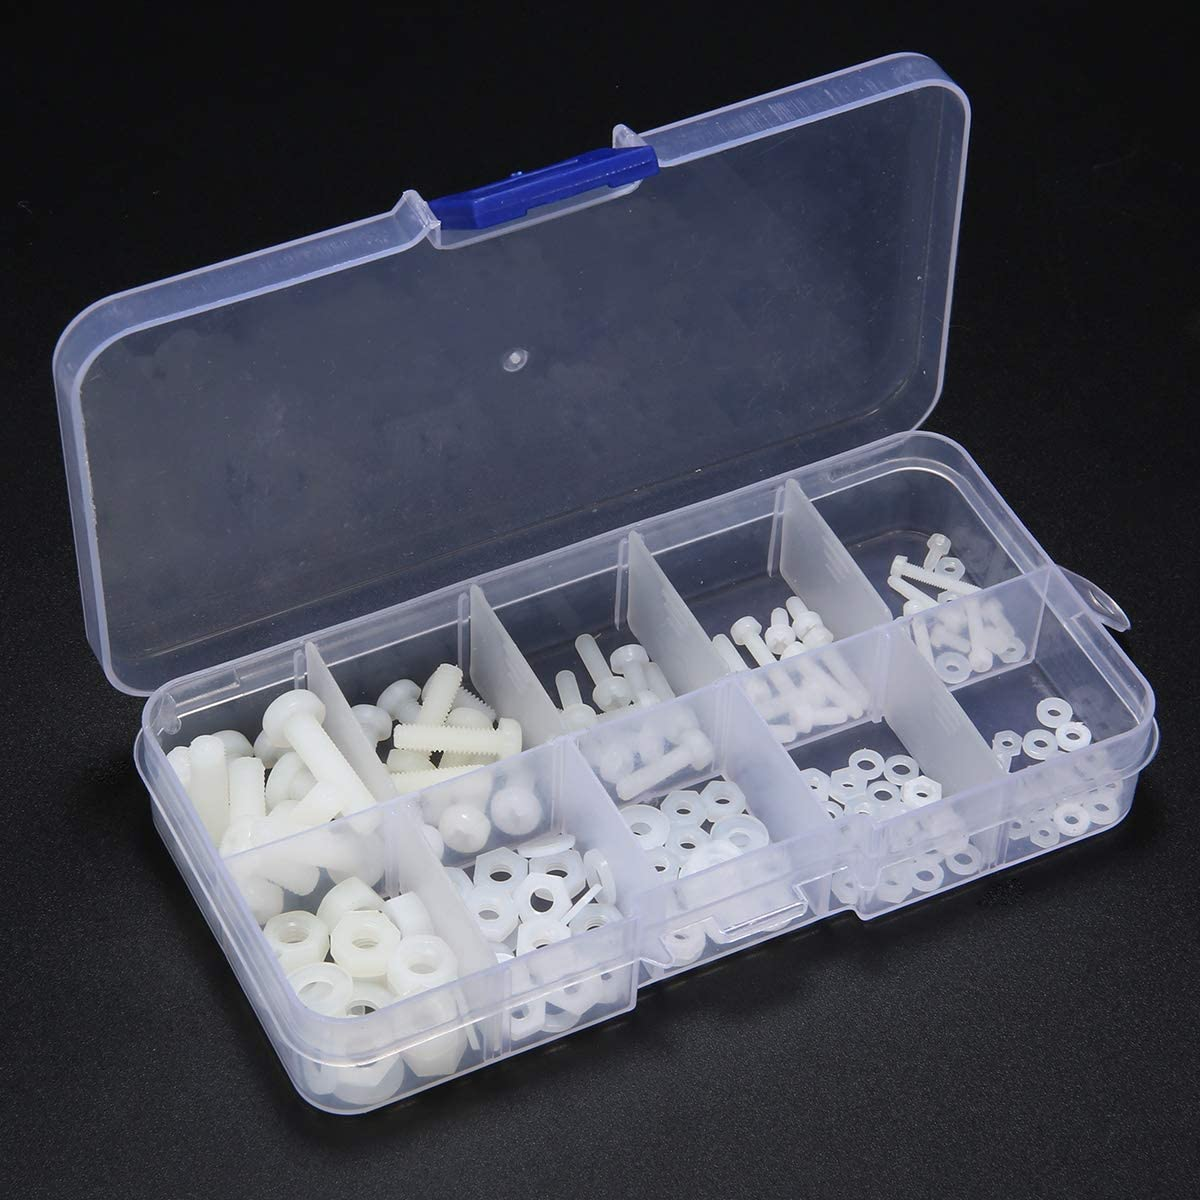 150pcs White Nylon Hex Screw M2 M2.5 M3 M4 M5 Bolt Nut Standoff Spacer Kit with Plastic Box Corrosion Resistant Wang shufang WSF-Adapters